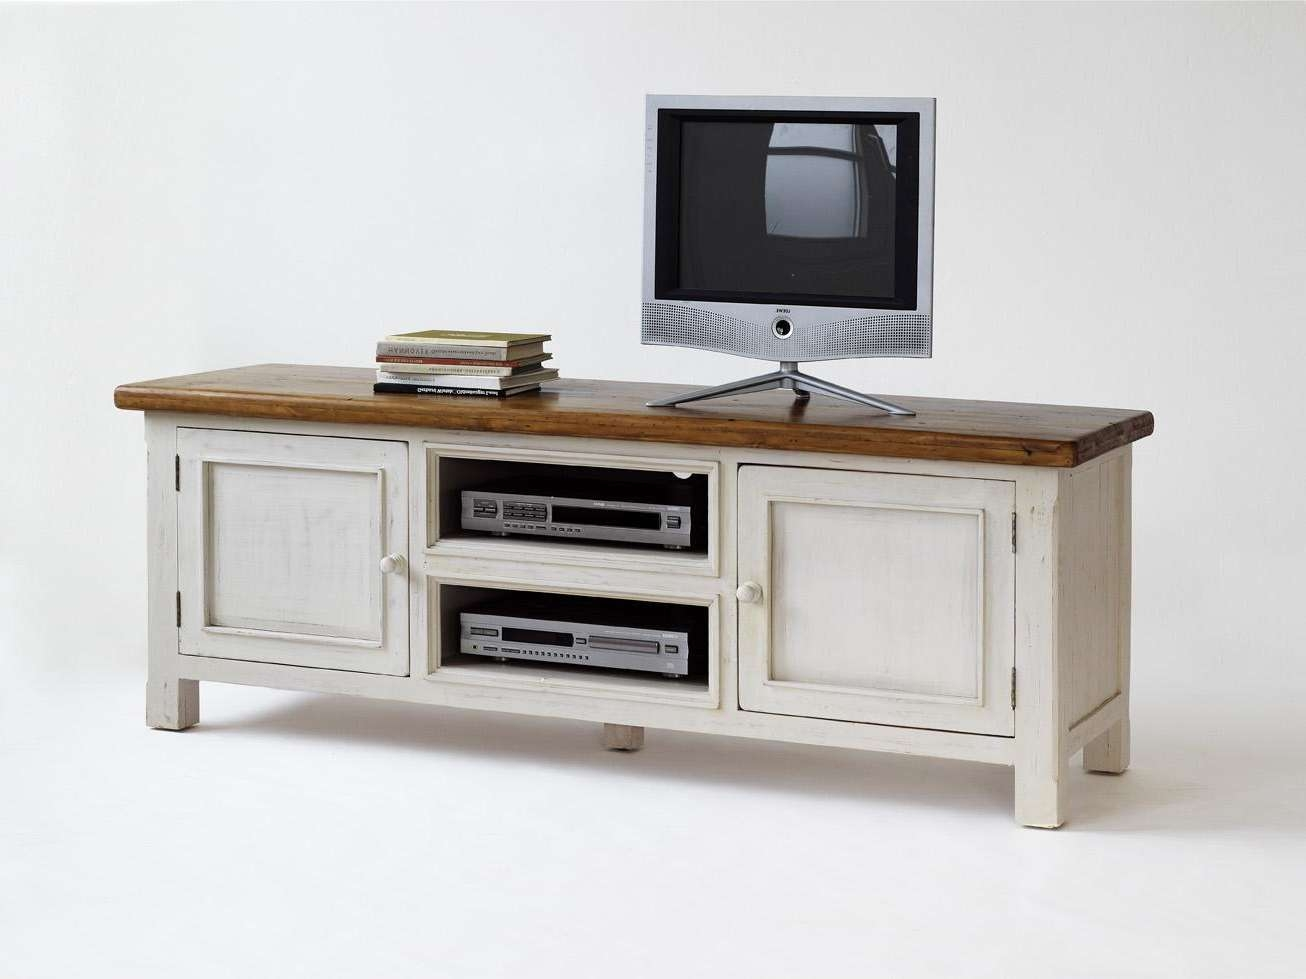 Incredible Decoration White Wood Furniture Nice Design Ideas Throughout White Wooden Tv Stands (View 6 of 20)